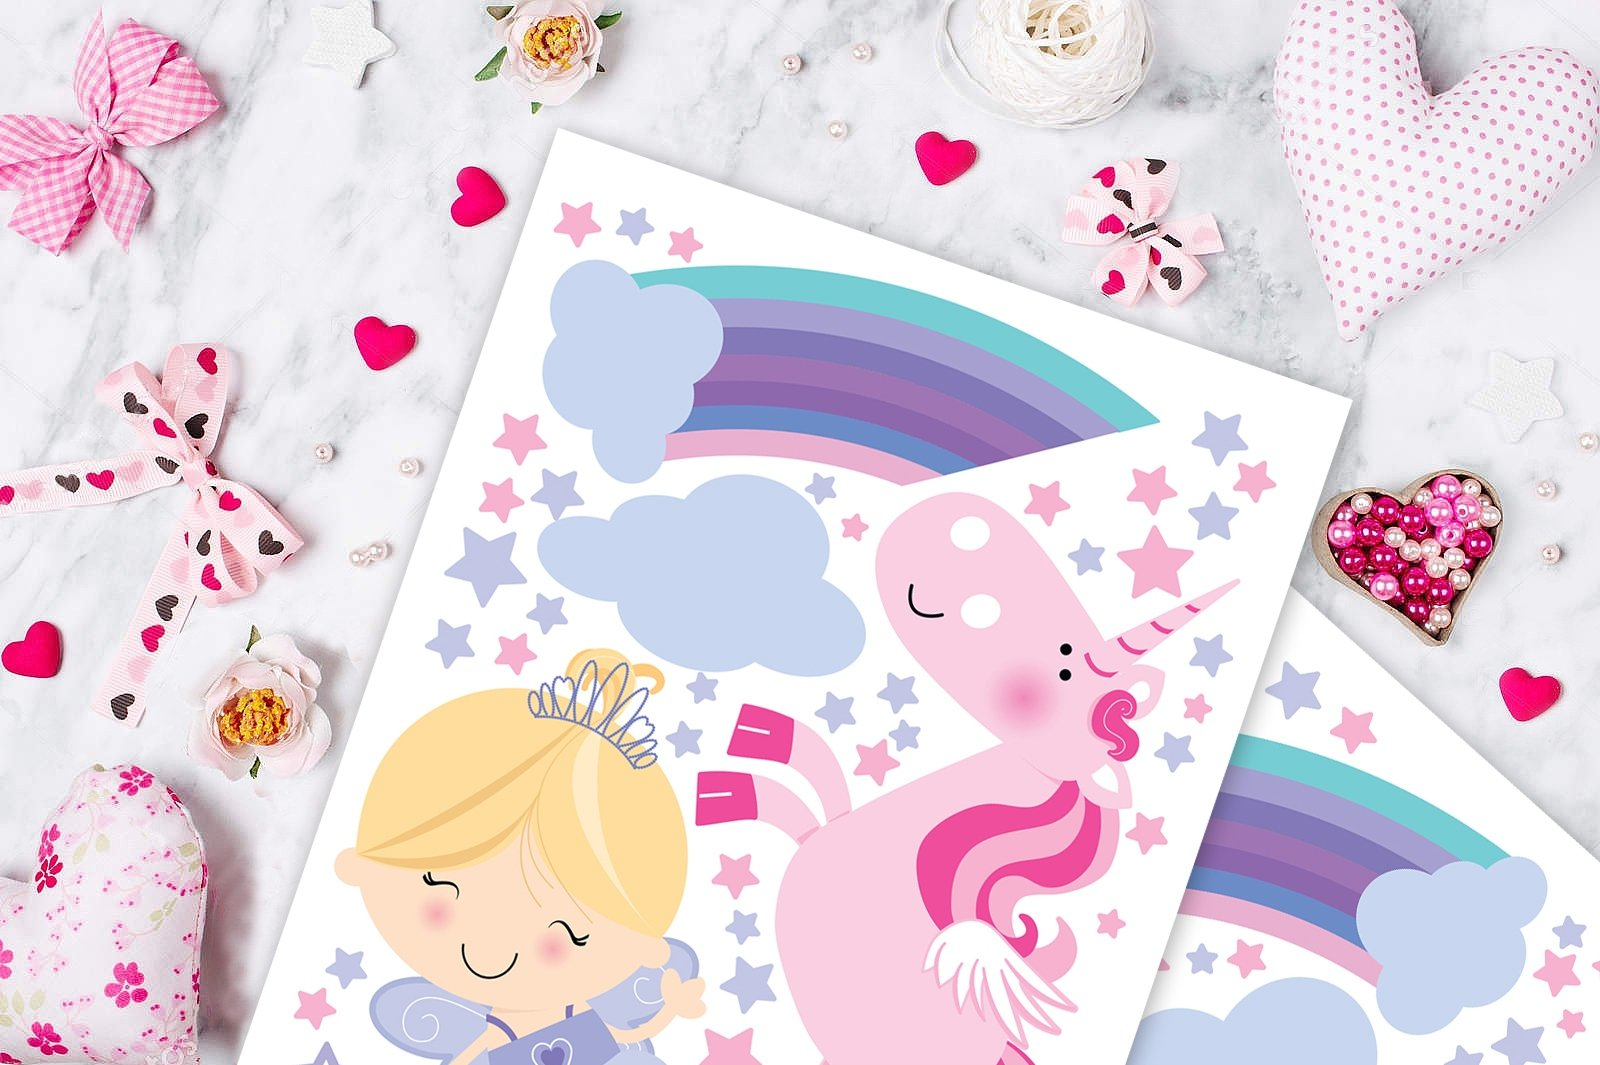 Unicorn Baby Girl Room Décor - Fairy Wall Stickers Childrens for Bedroom, Nursery, Playroom - with Free Gift! 9